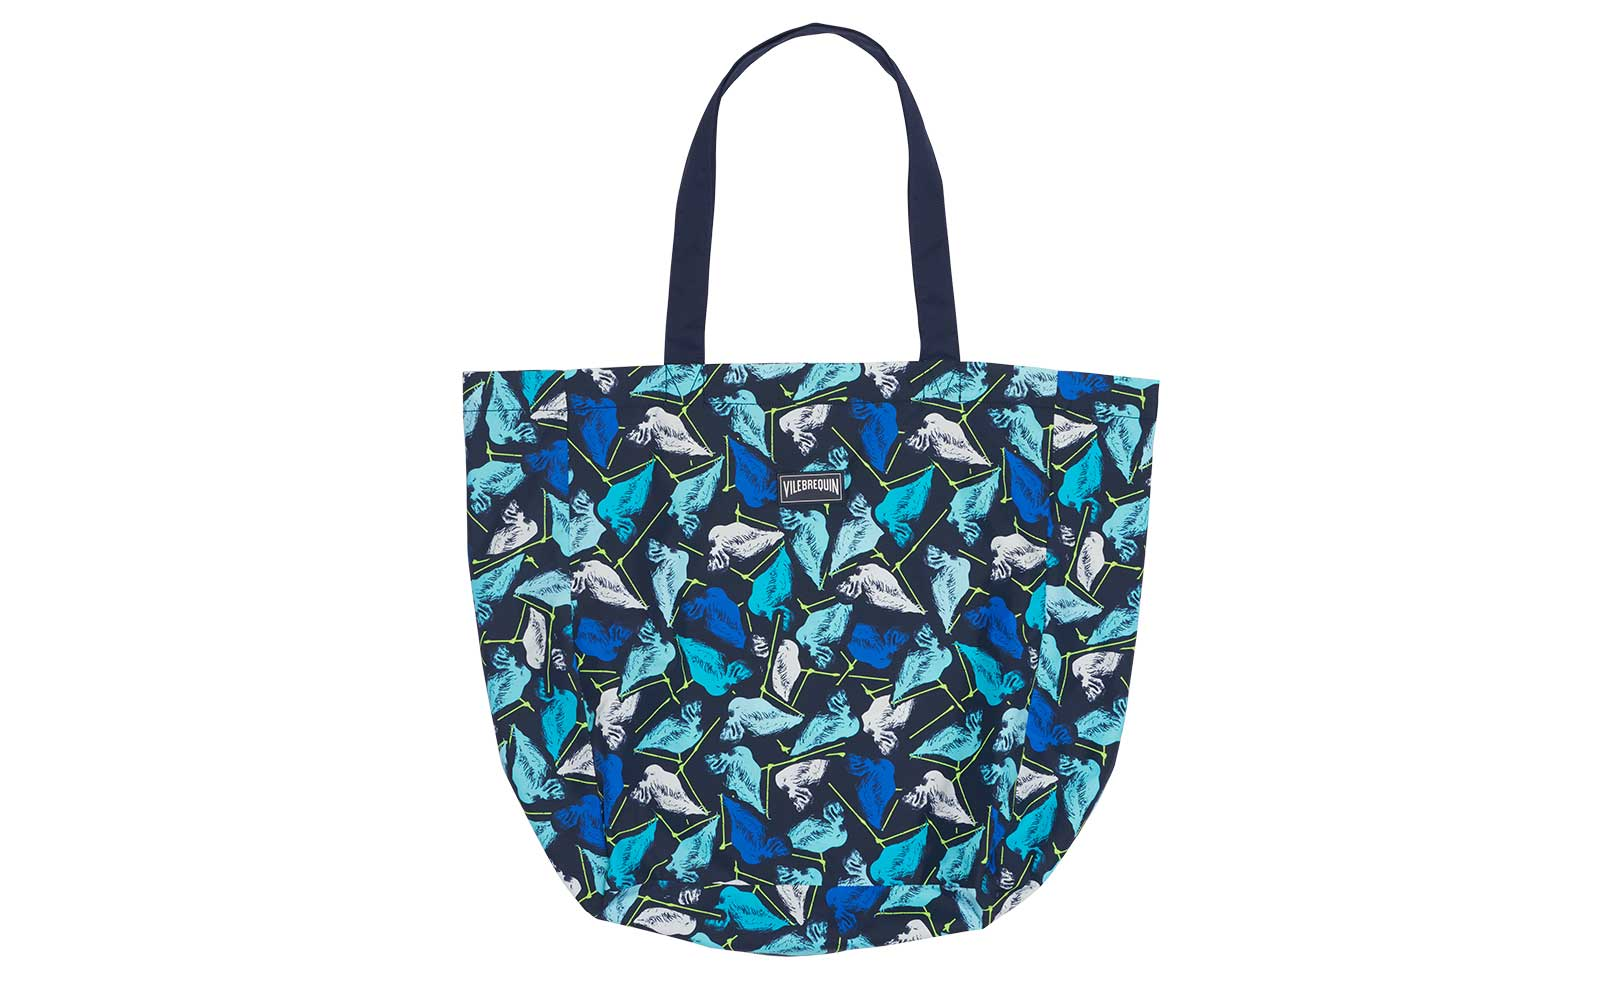 Vilebrequin tote bag in Baha Mar exclusive print